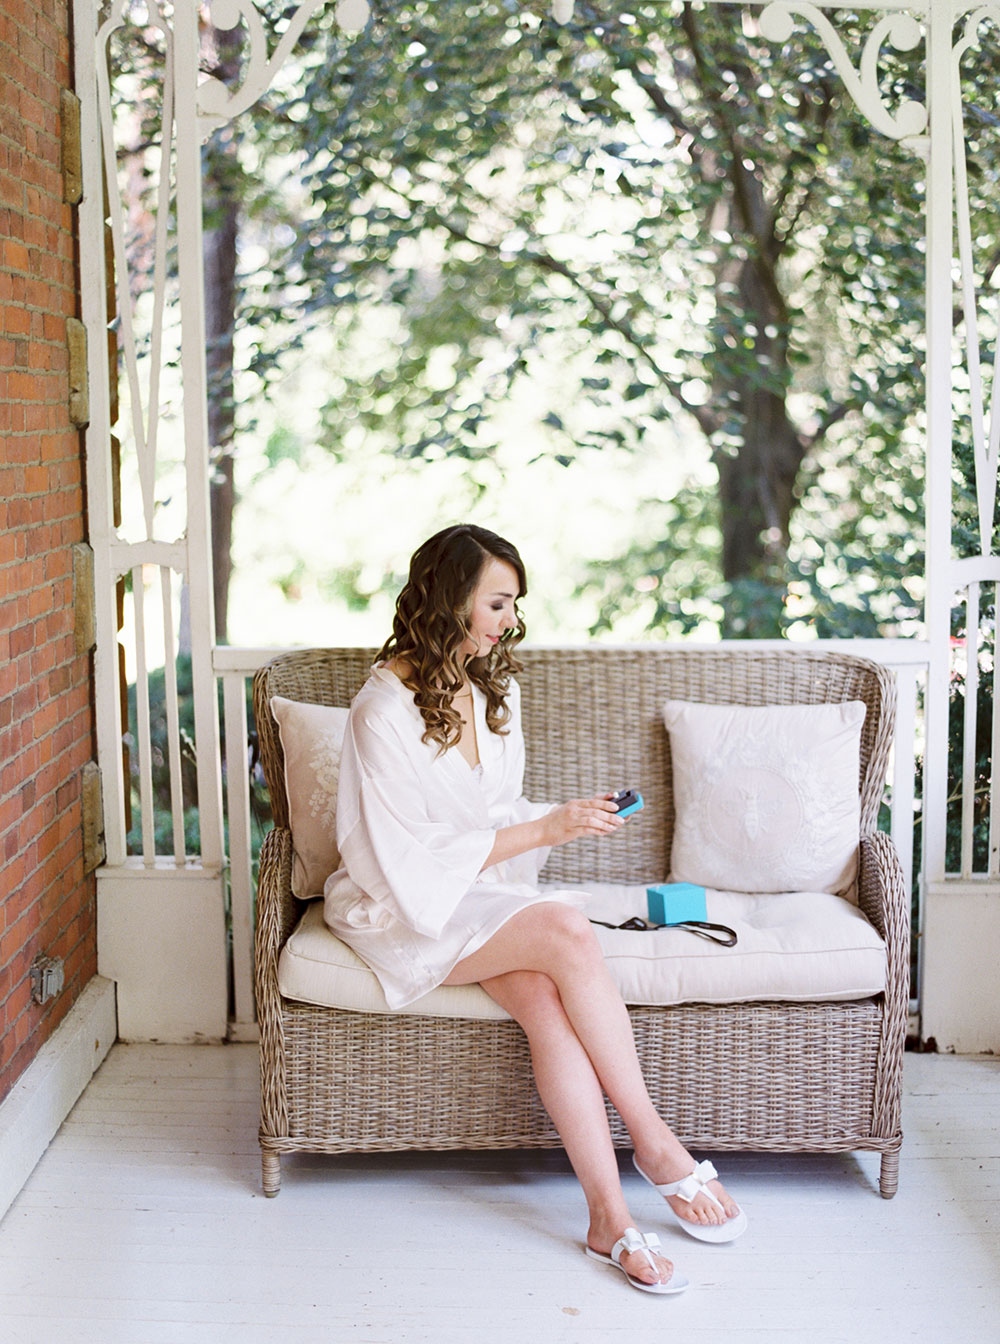 kurtz-orchards-wedding-gracewood-estate-niagara-on-the-lake-photo-by-katie-nicolle-photography-0004.JPG